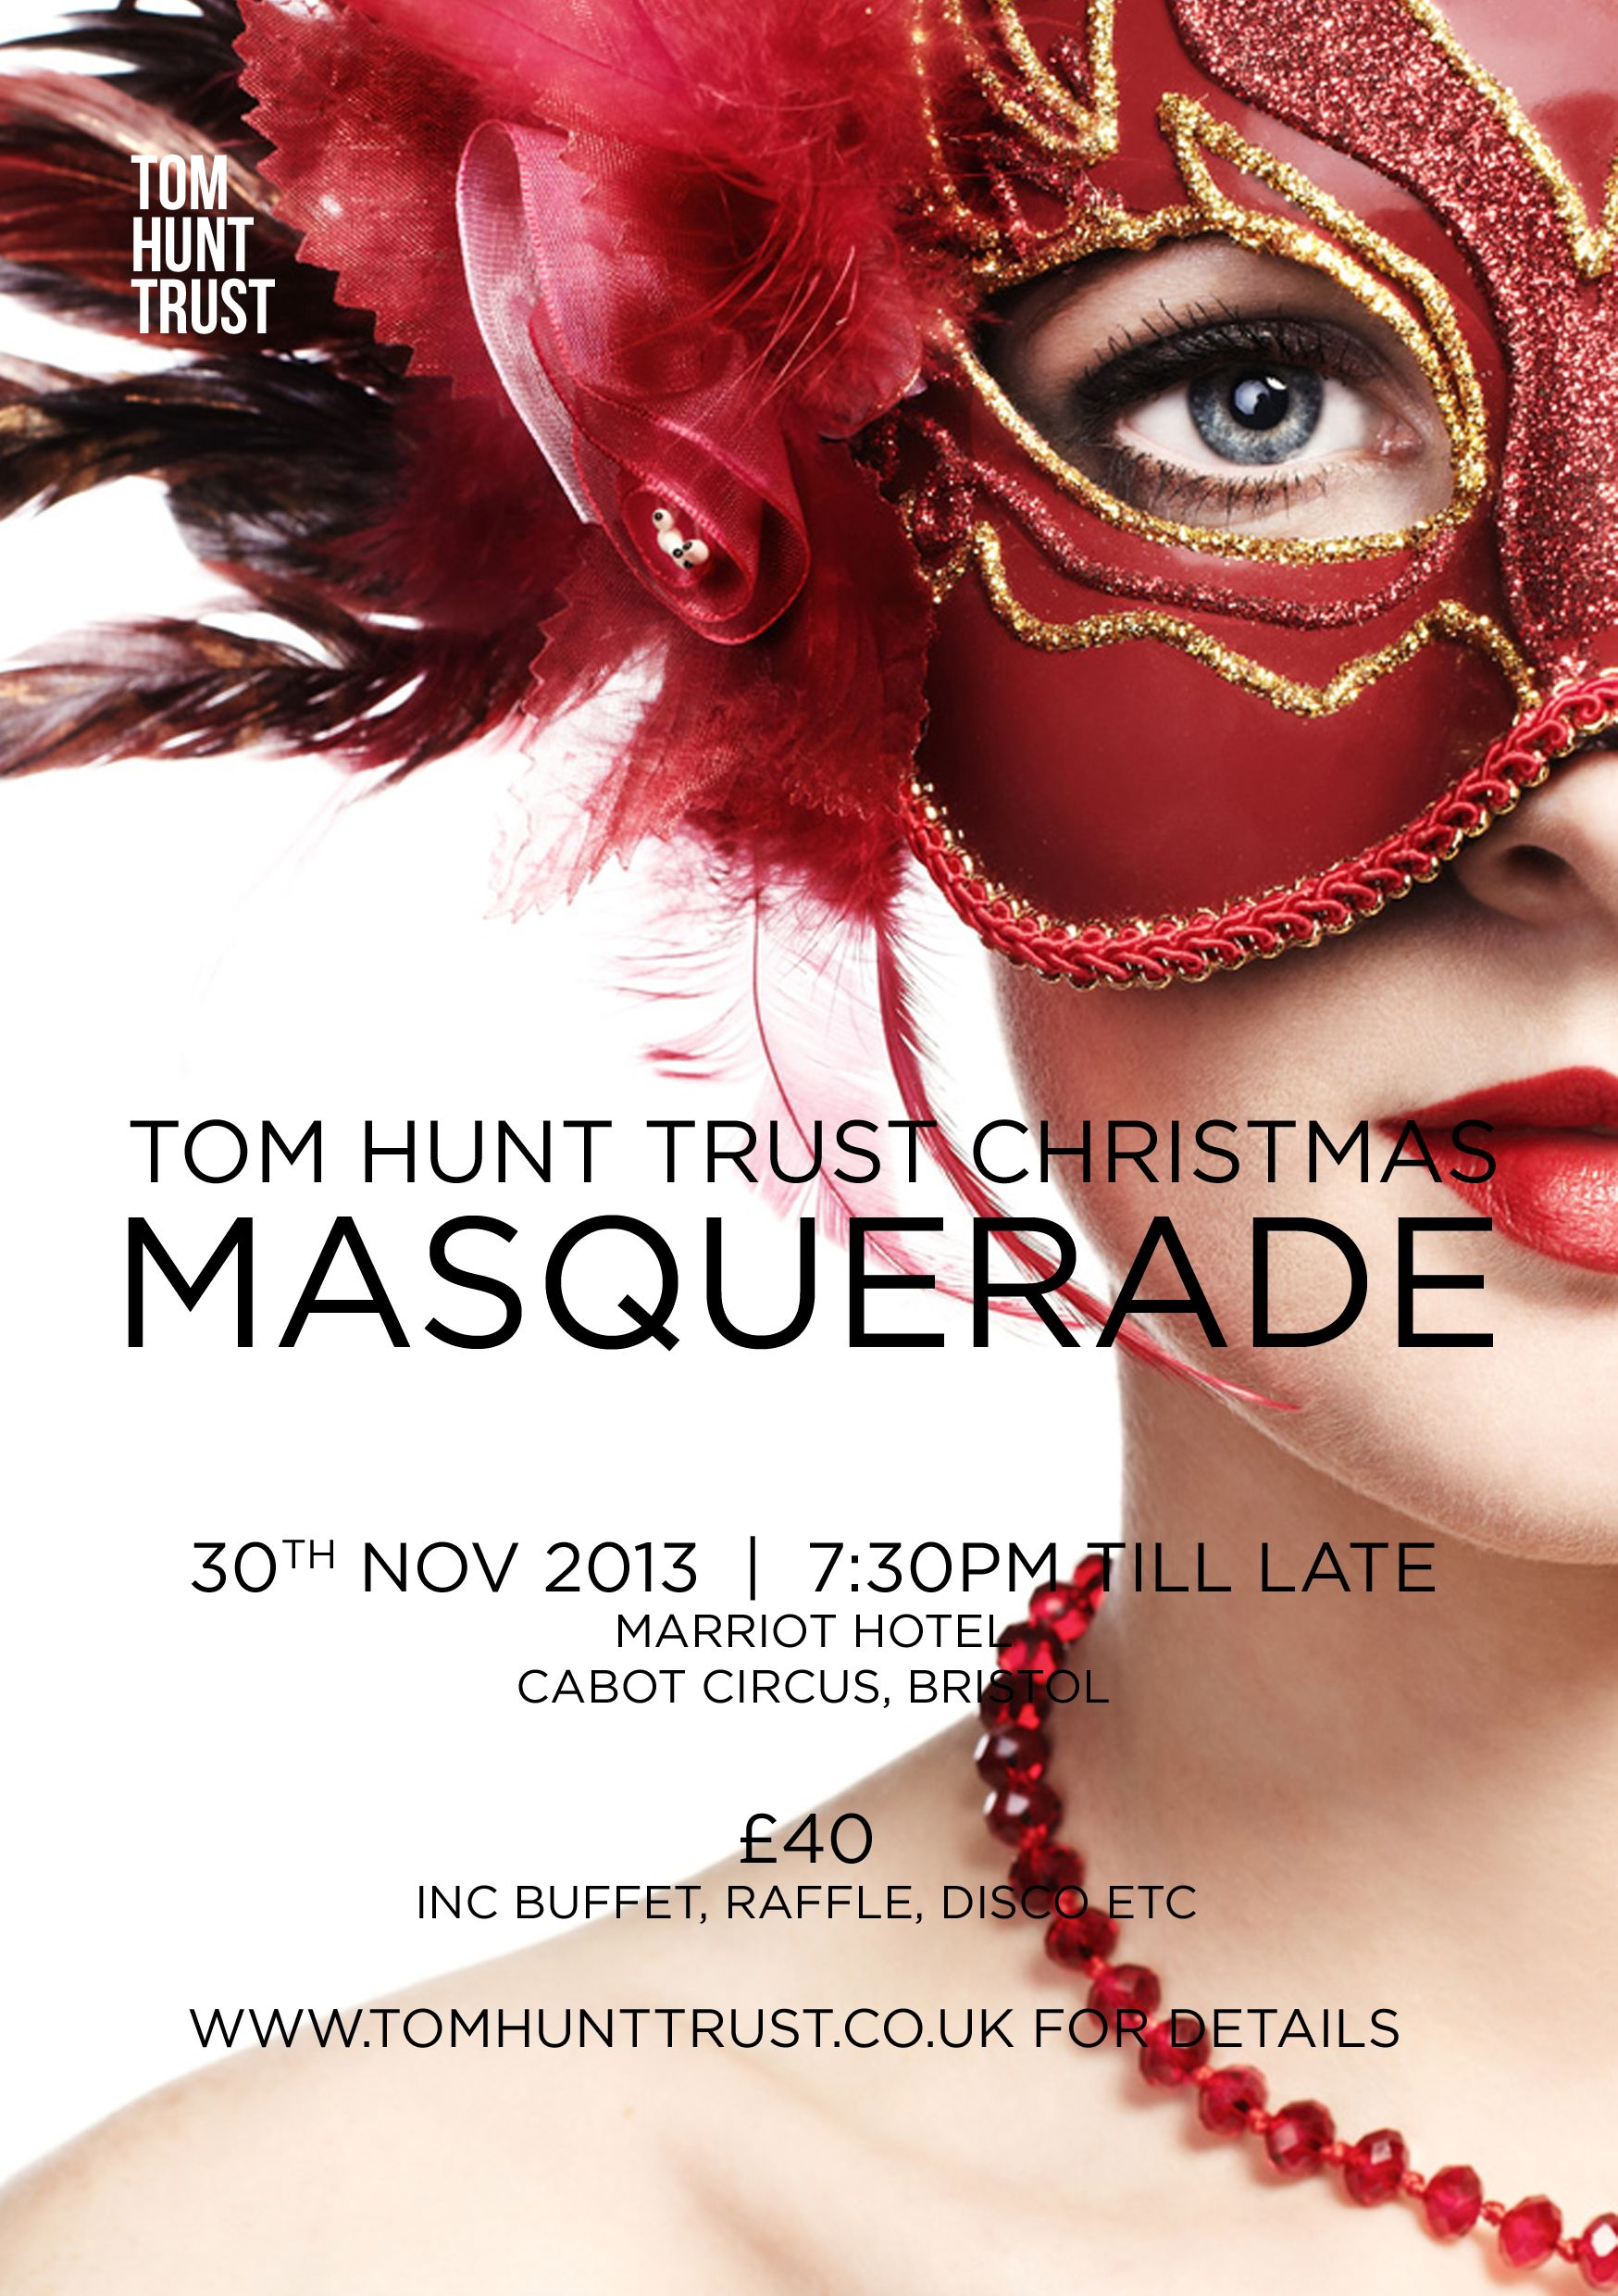 Luxury Invitation For Masquerade Party Pictures